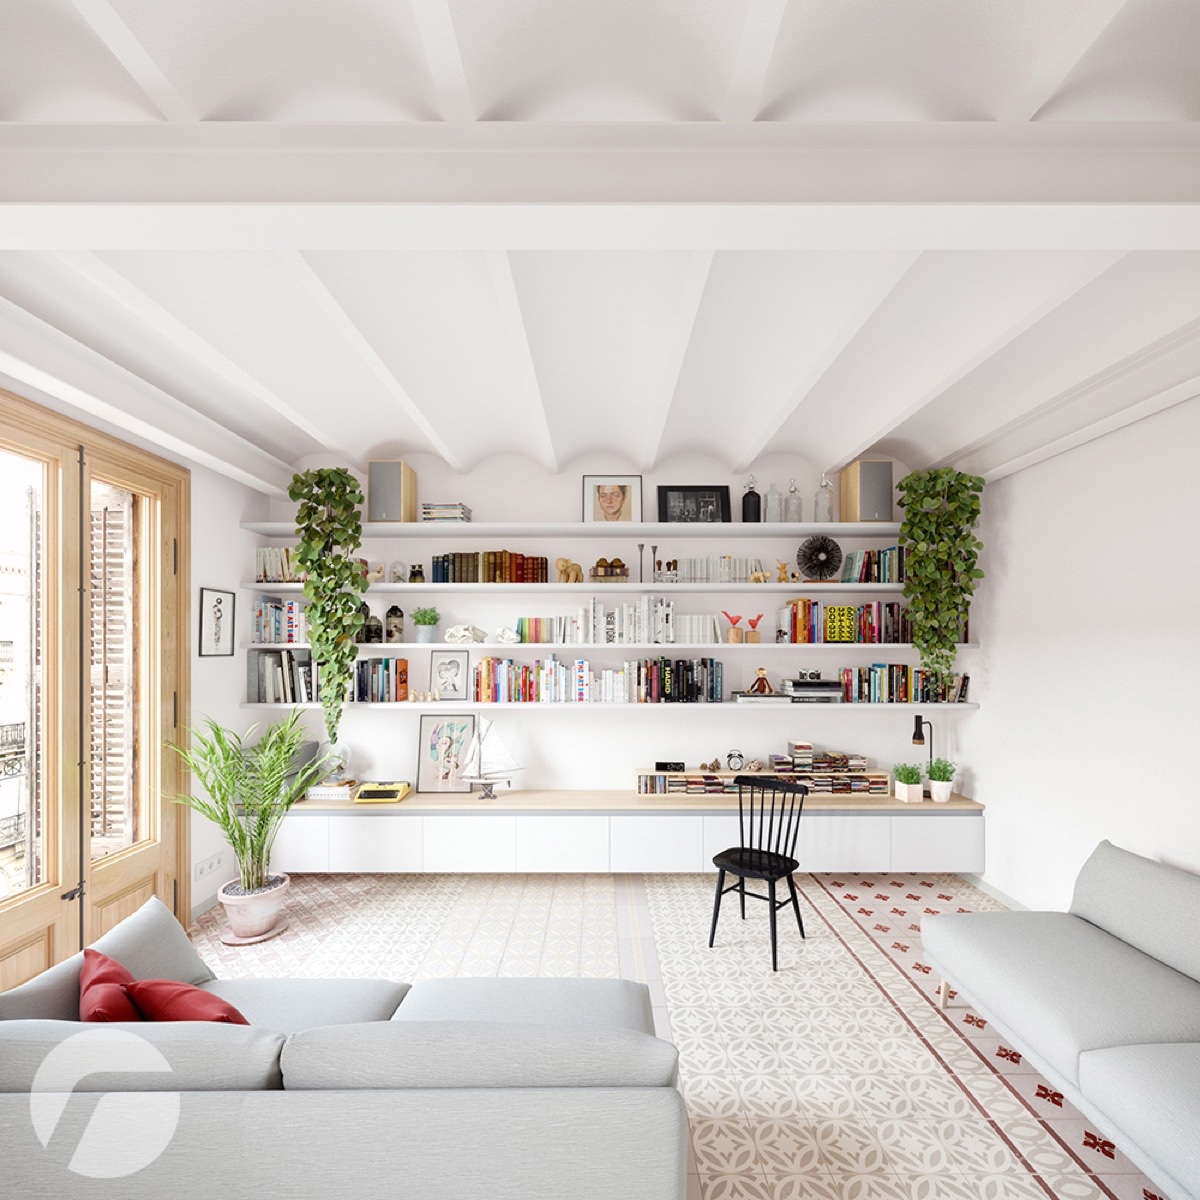 Home Internal Design: 10 Stunning Apartments That Show Off The Beauty Of Nordic